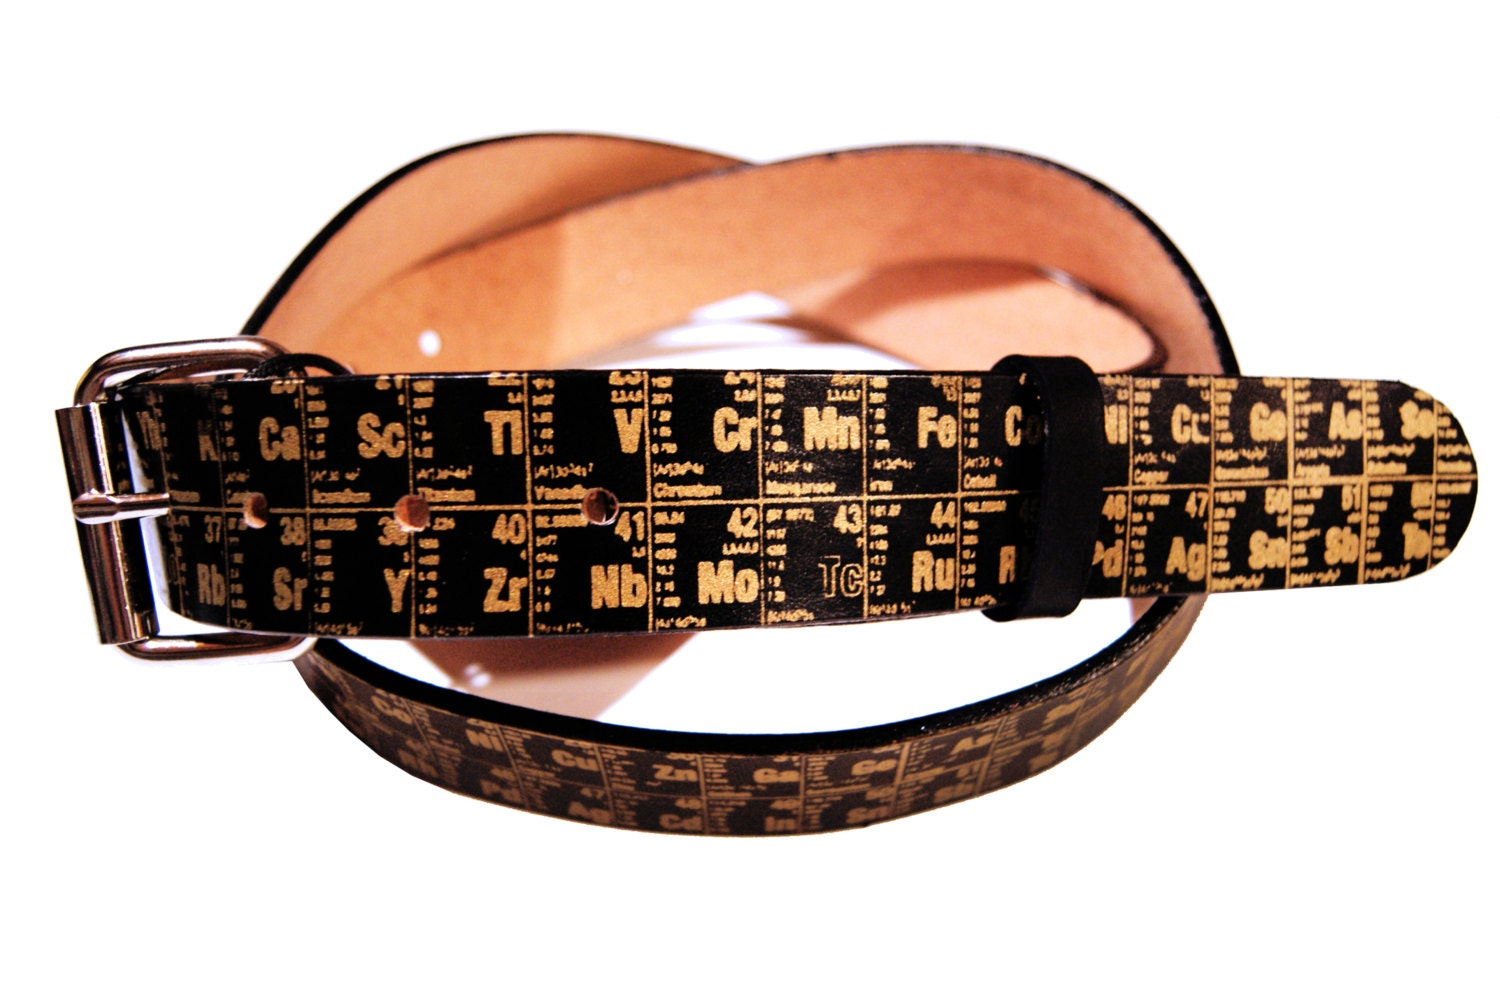 Periodic table of elements leather belt e101909470355743m periodic table of elements leather belt gamestrikefo Gallery